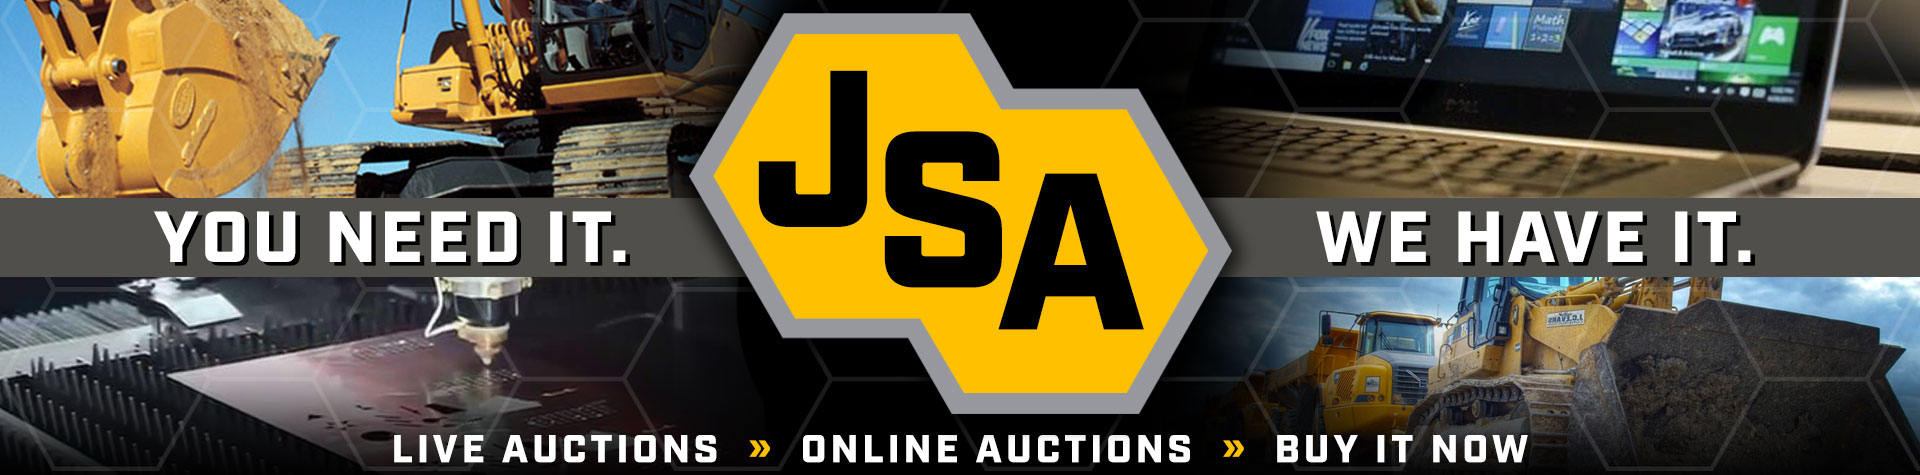 J. Stout Auctions - Auction House In Portland, Oregon